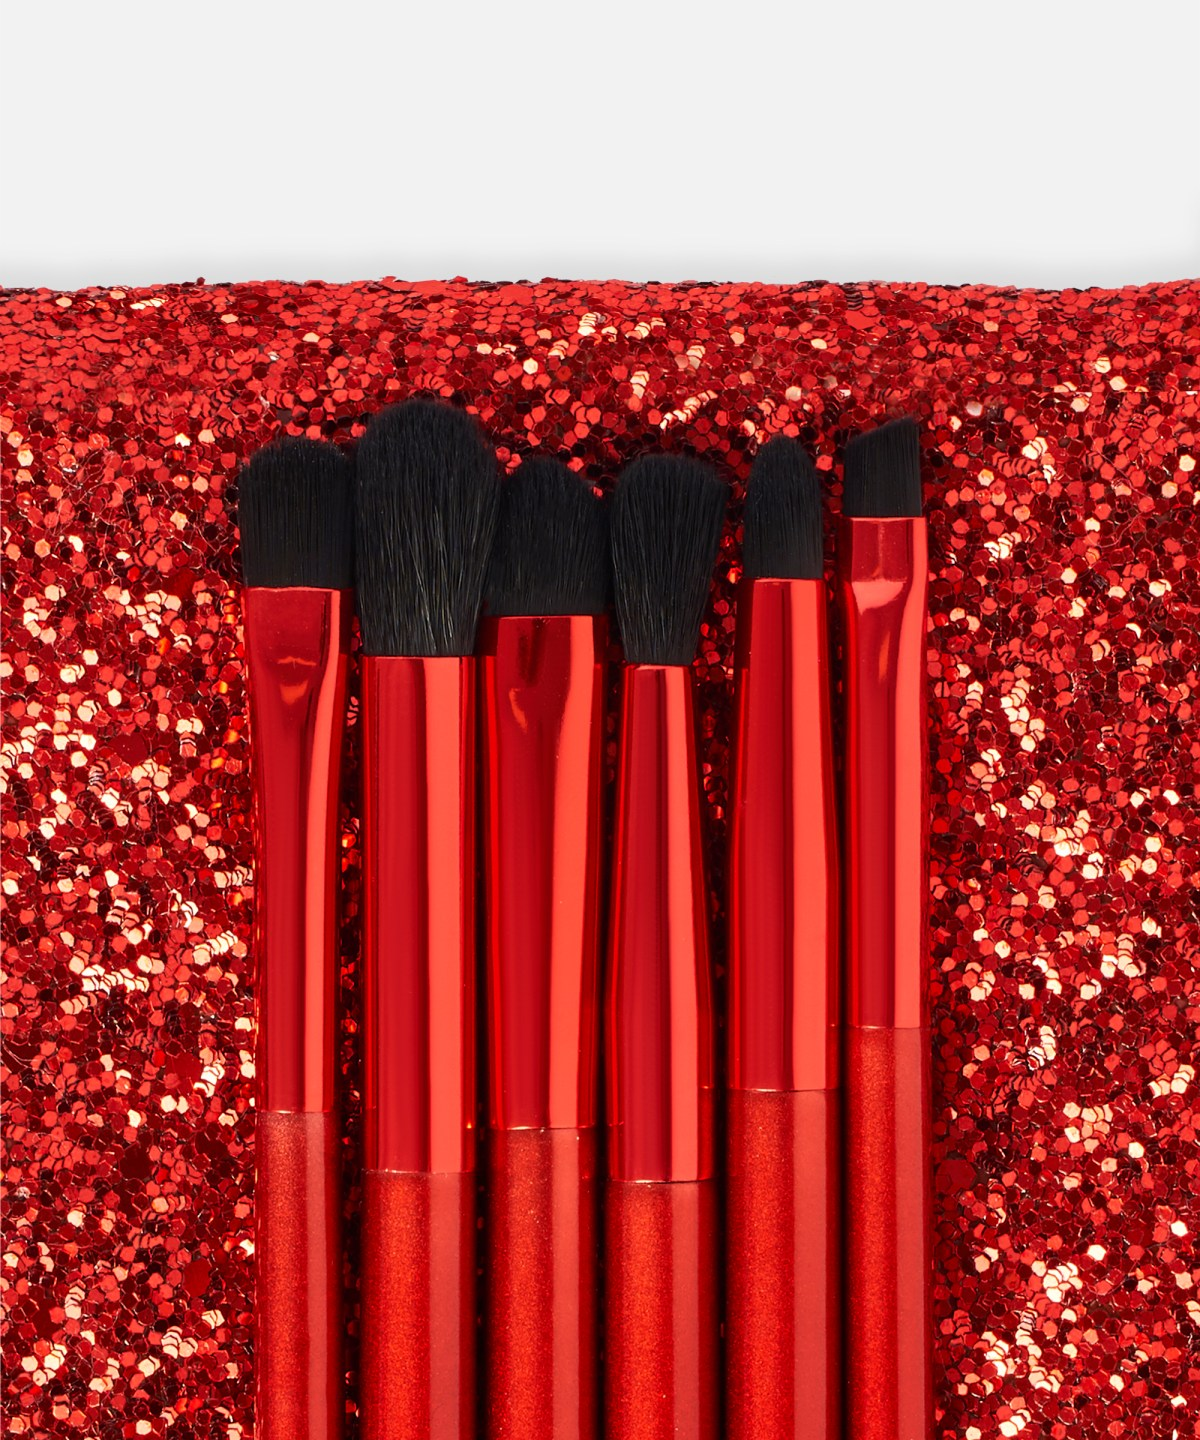 BH Cosmetics - Drop Dead Gorgeous Killer Queen 6 Piece Eye Brush Set